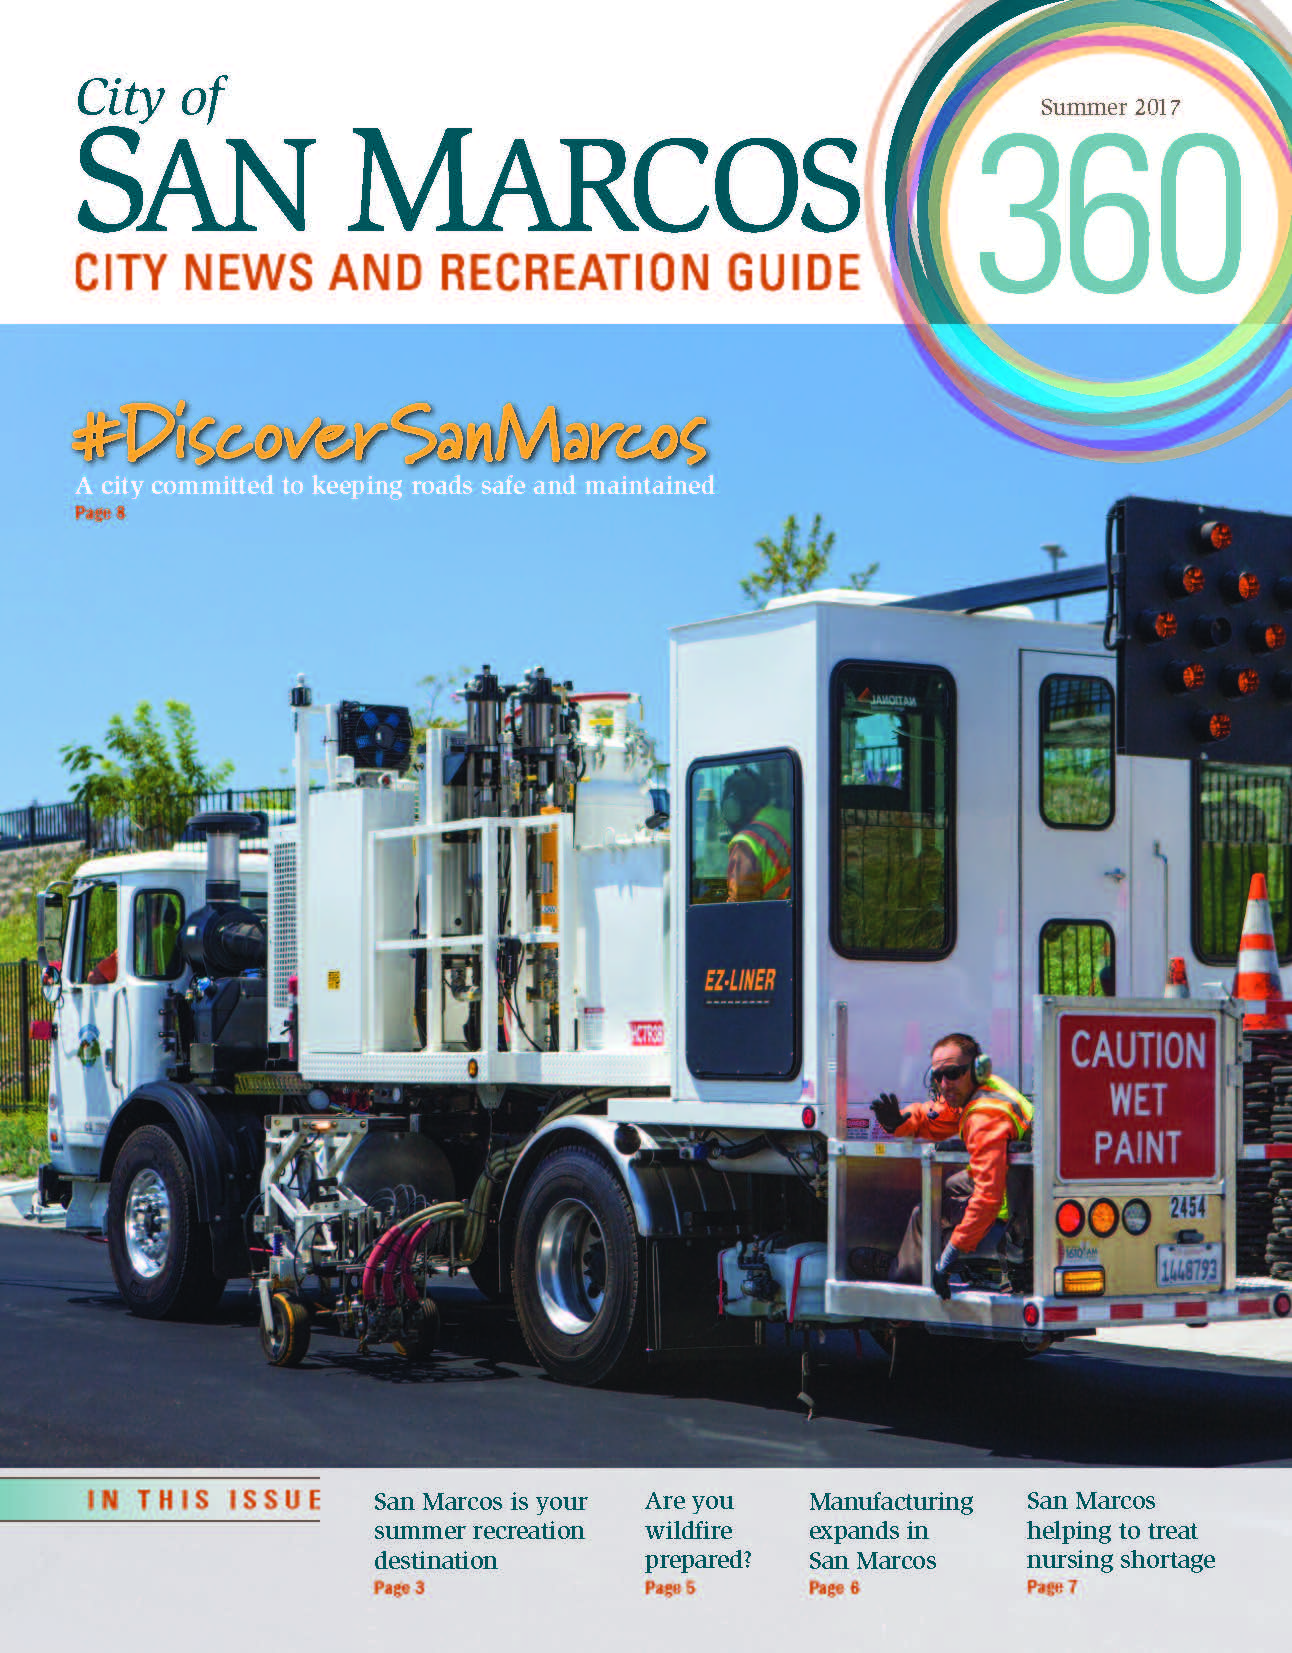 San Marcos 360, Summer 2017 COVER Photo